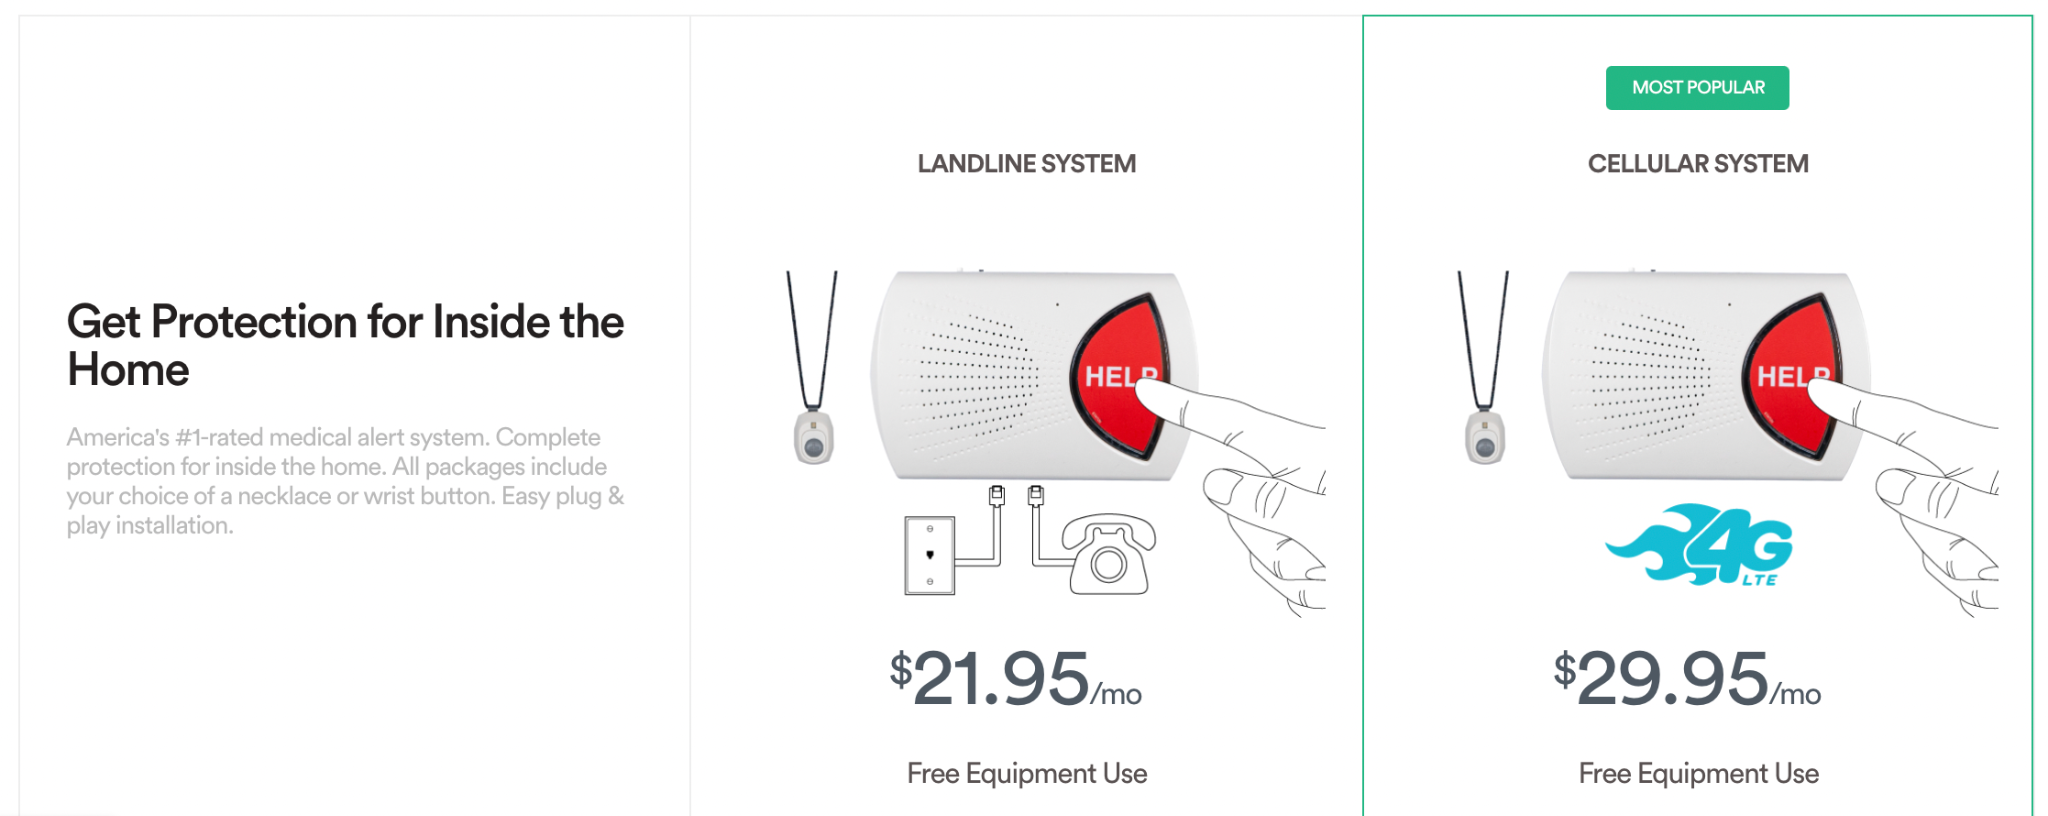 Image showing the best price package out of two